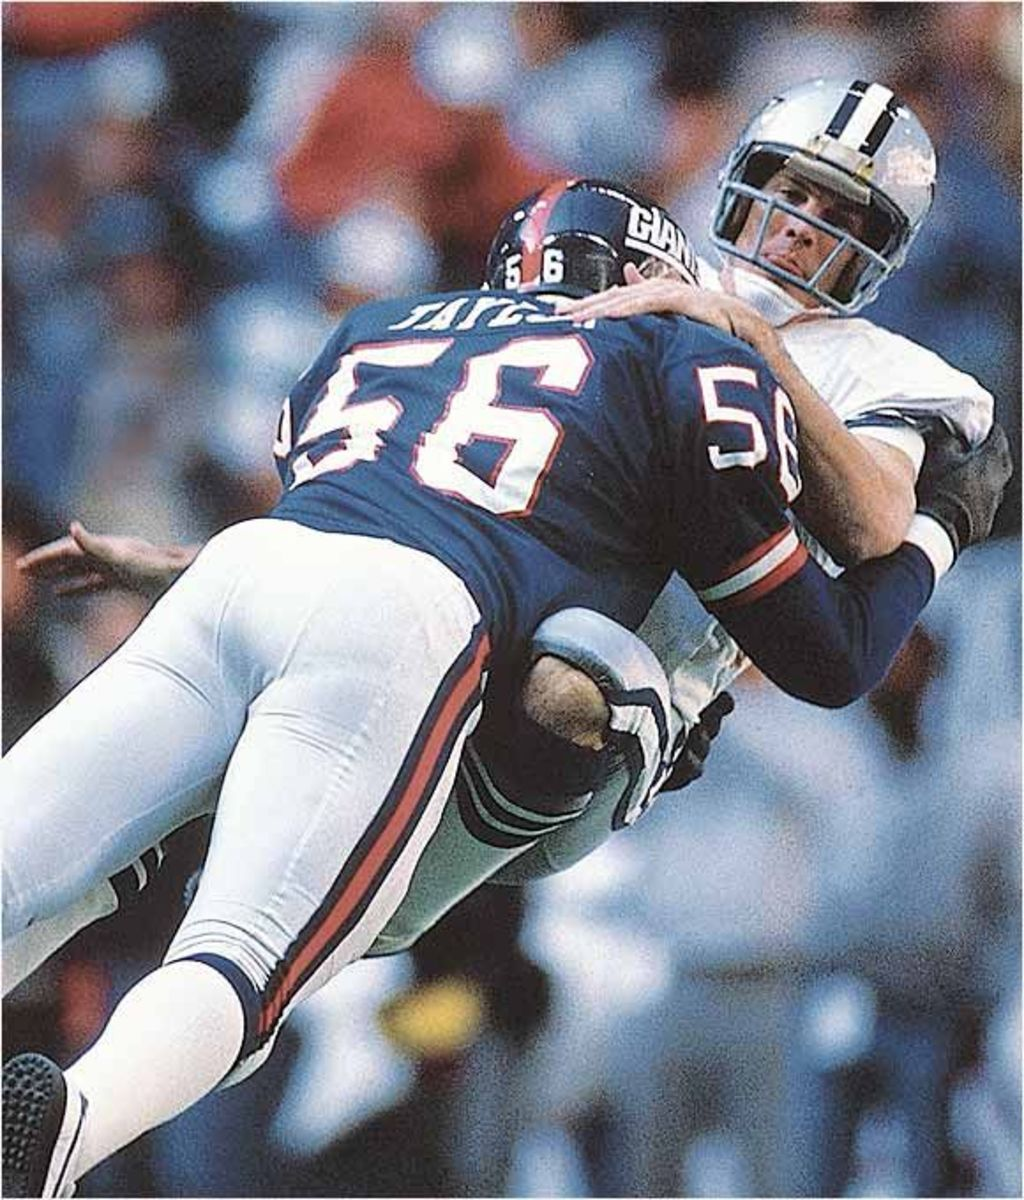 Lawrence Taylor drives a quarterback into the ground on a sack.